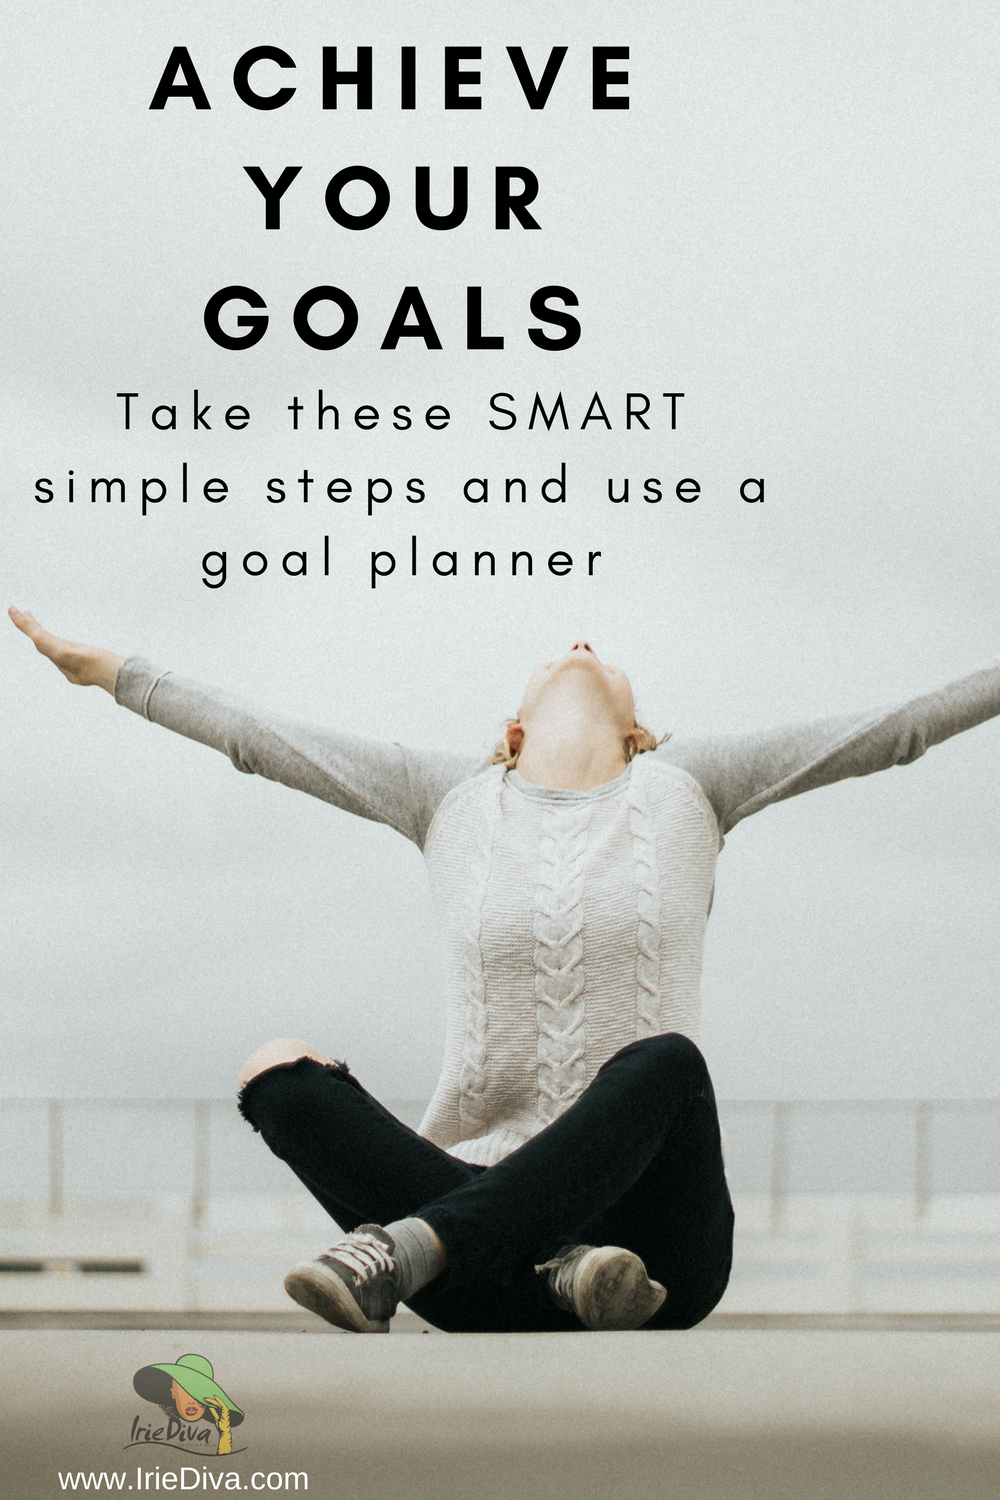 How to achieve your goals by making them SMART and breaking them down into monthly, weekly and daily tasks. Life goals, goal setting, goal planning, goal setting worksheet, goal setting for students, goal setting for adults, goals setting planner, goals planner, #goalsetting #achieveyourgoals #reachyourgoals